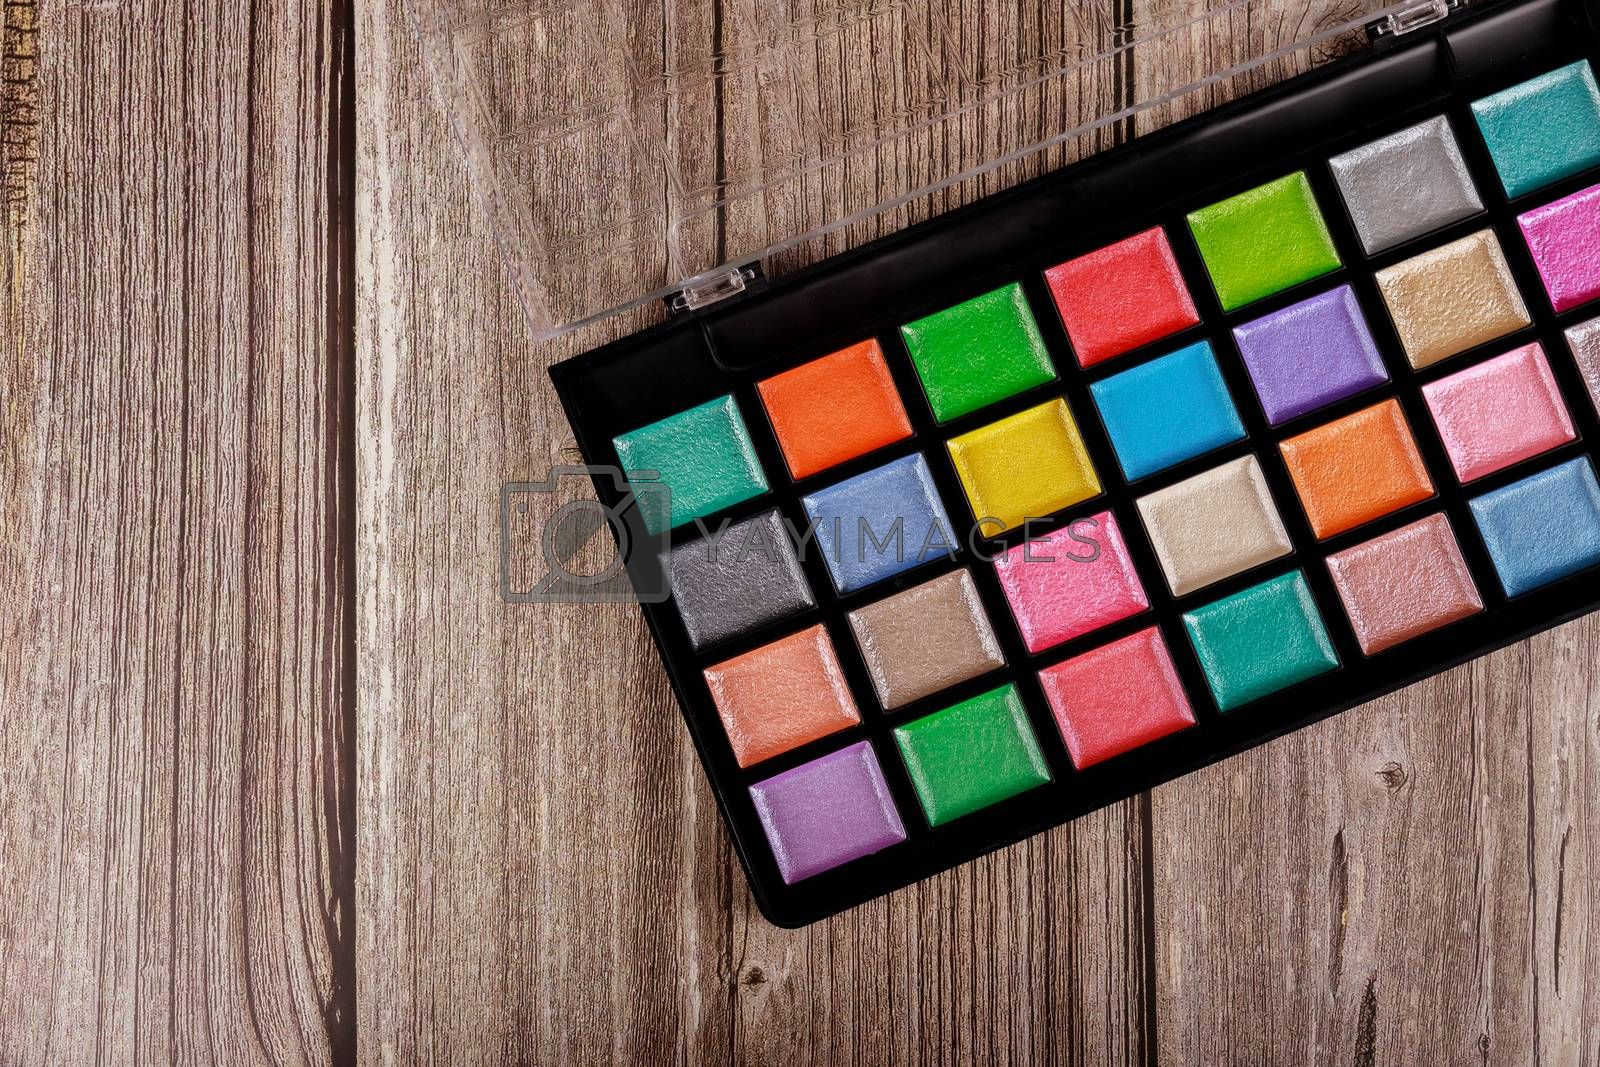 Make up palette, eye shadows in black box. Rectangular shape.